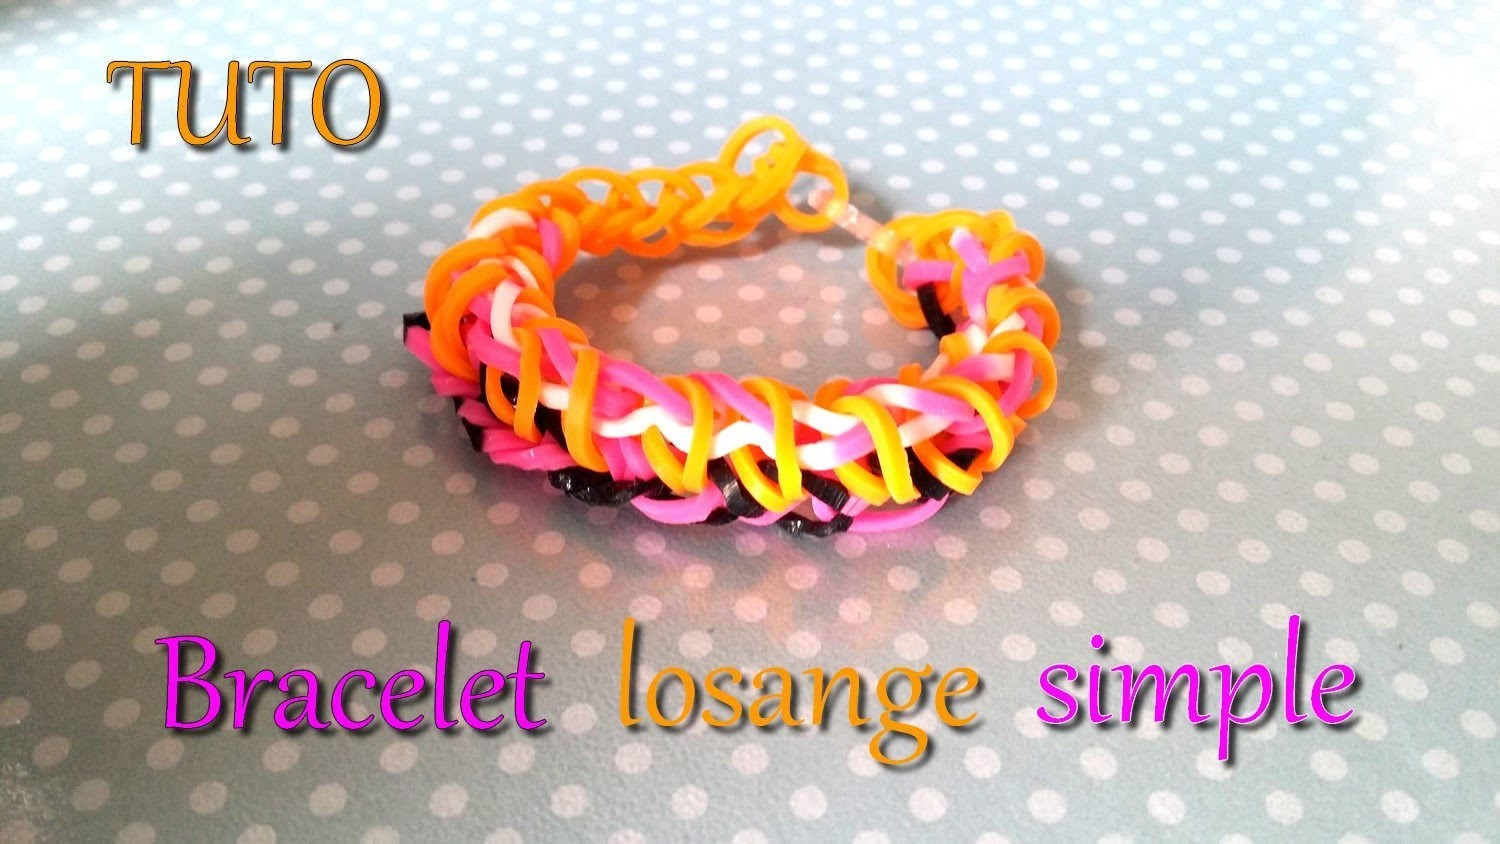 [ TUTO ] bracelet losange simple ben élastique